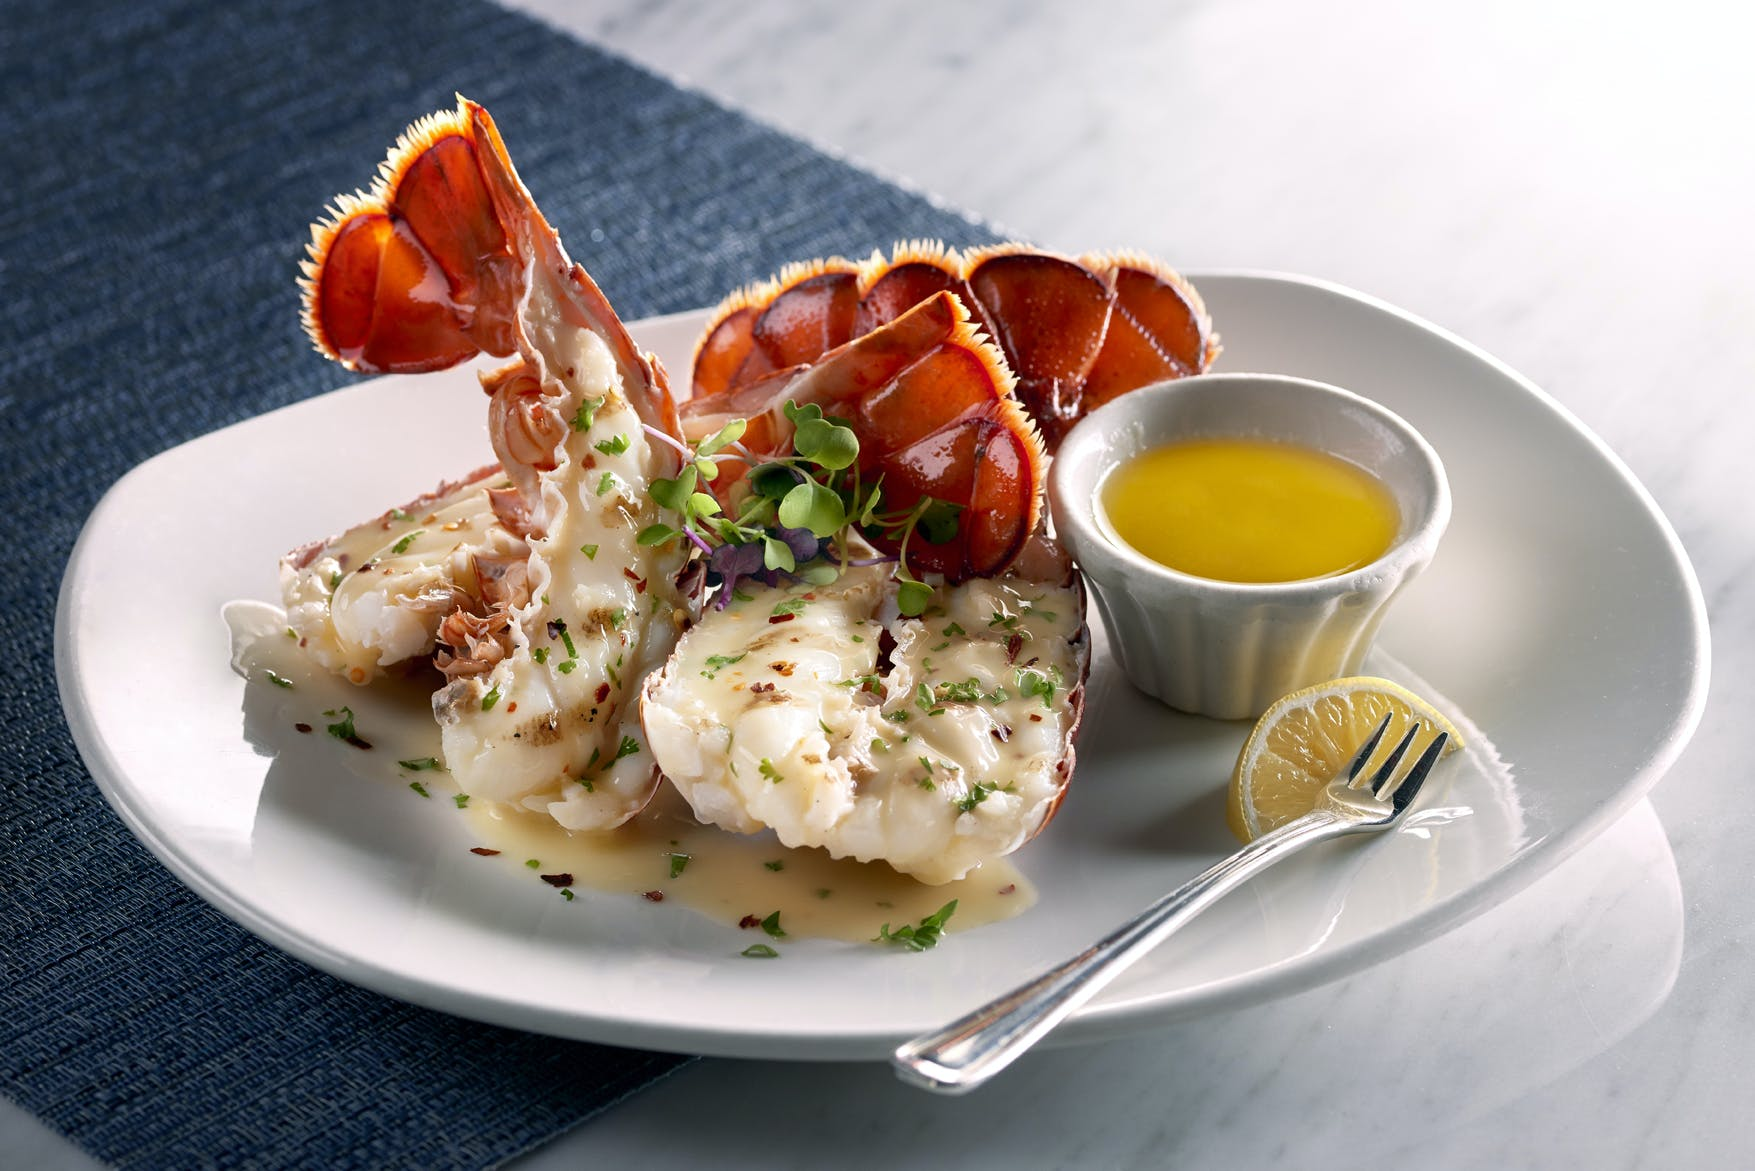 a plate of lobster with sauce on the side